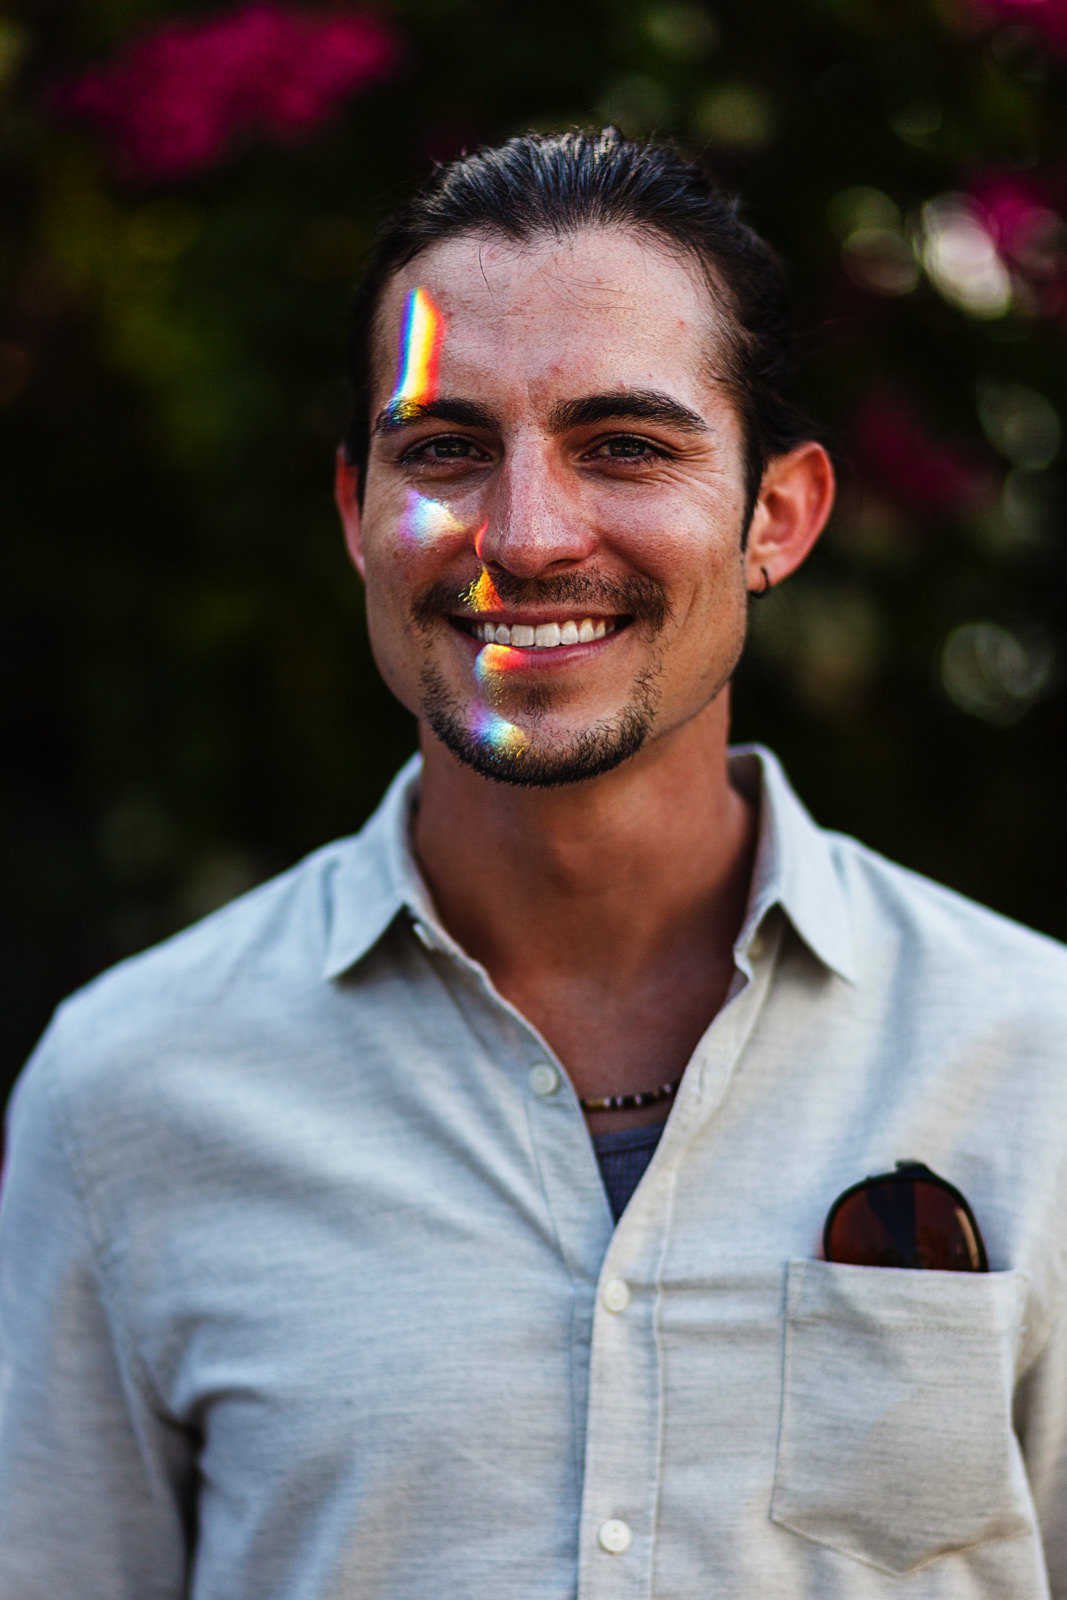 Groom portrait with a prism light on his face